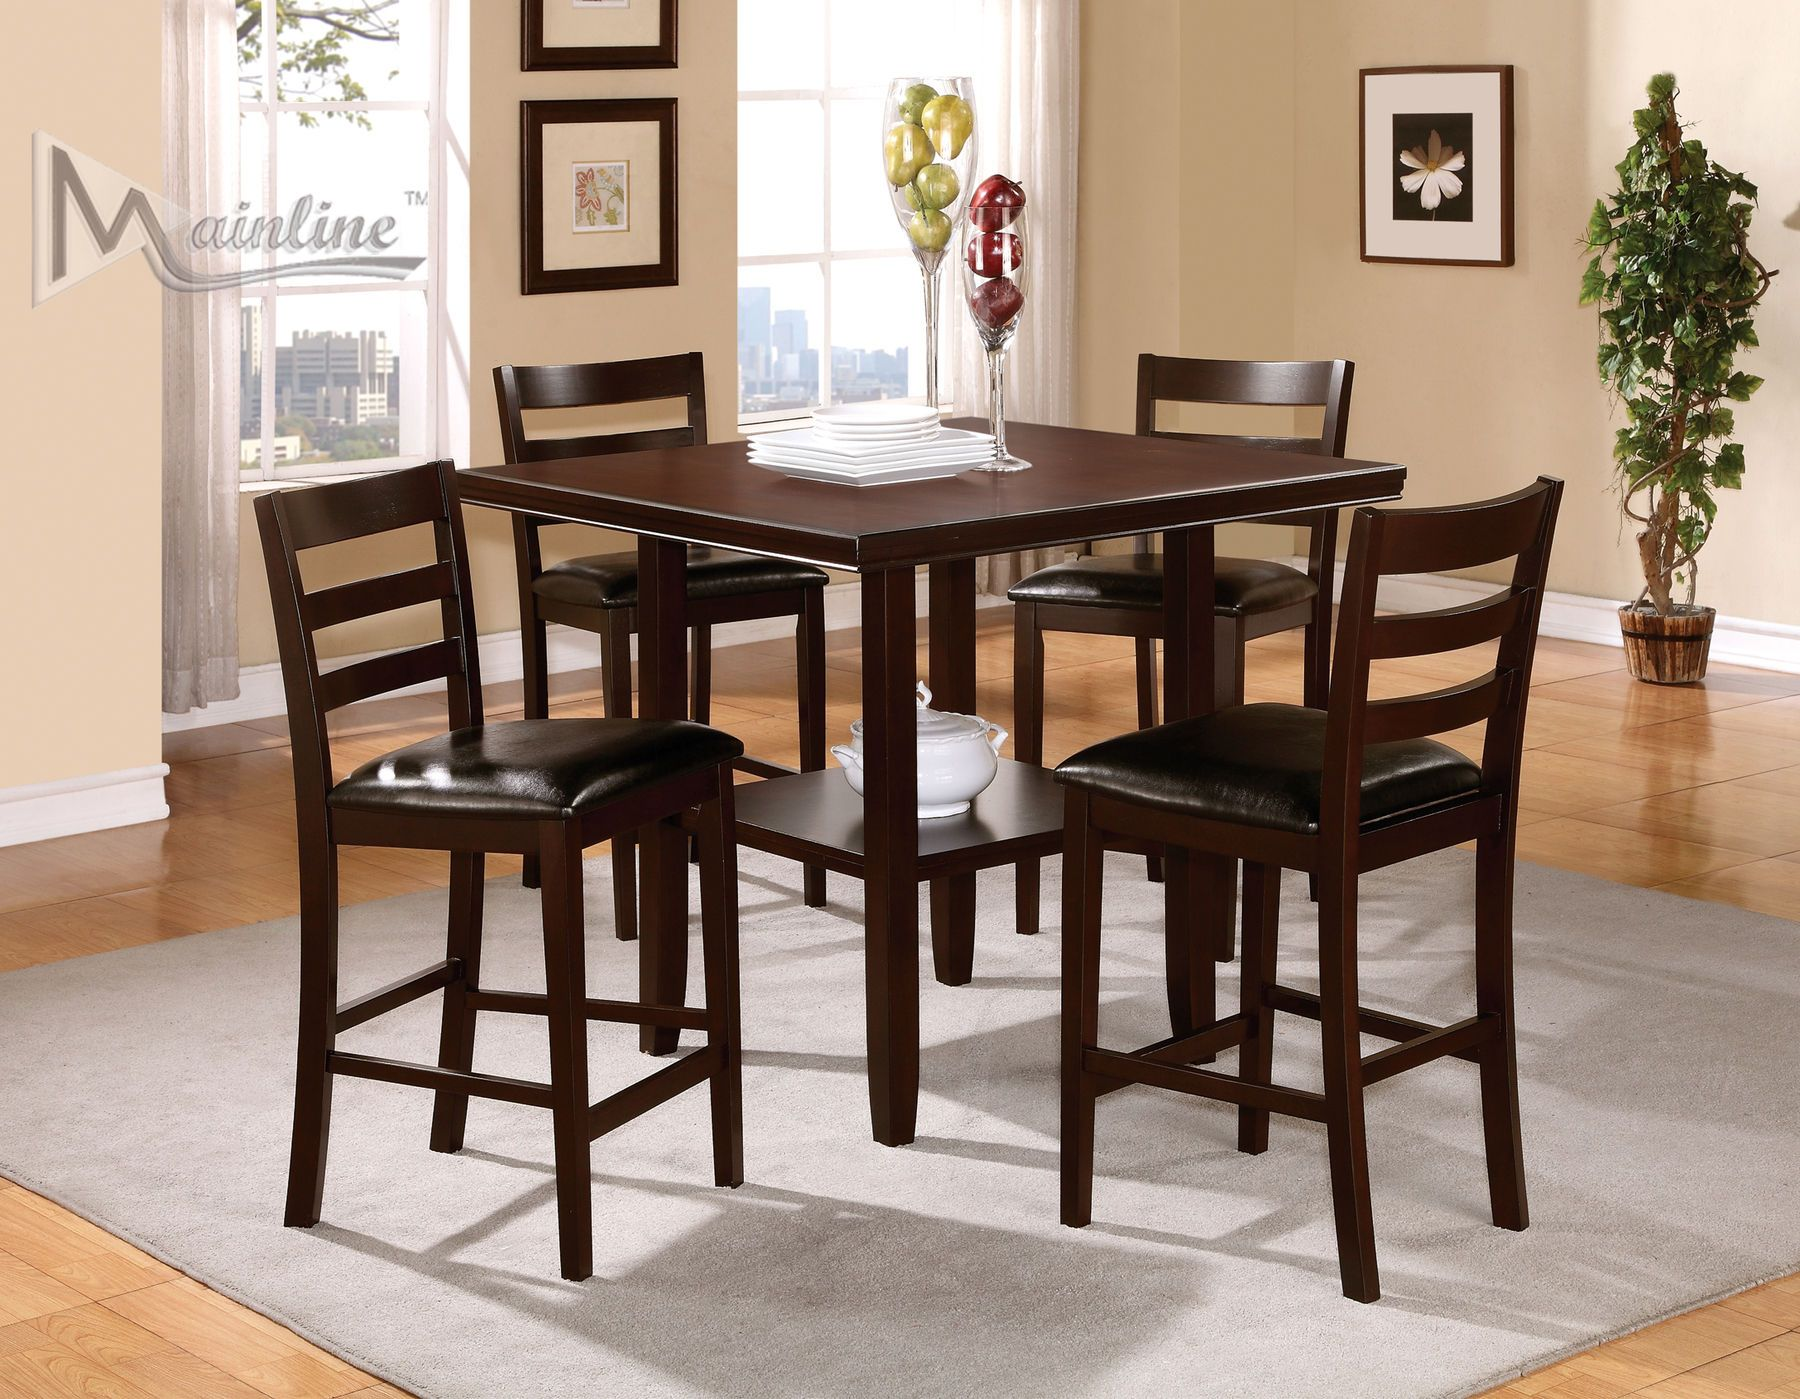 Java Table 4 Chairs 25010 Mainline Inc Counter Height Dining Sets In 2021 Bar Height Dining Table Counter Height Dining Sets Dining Table In Kitchen